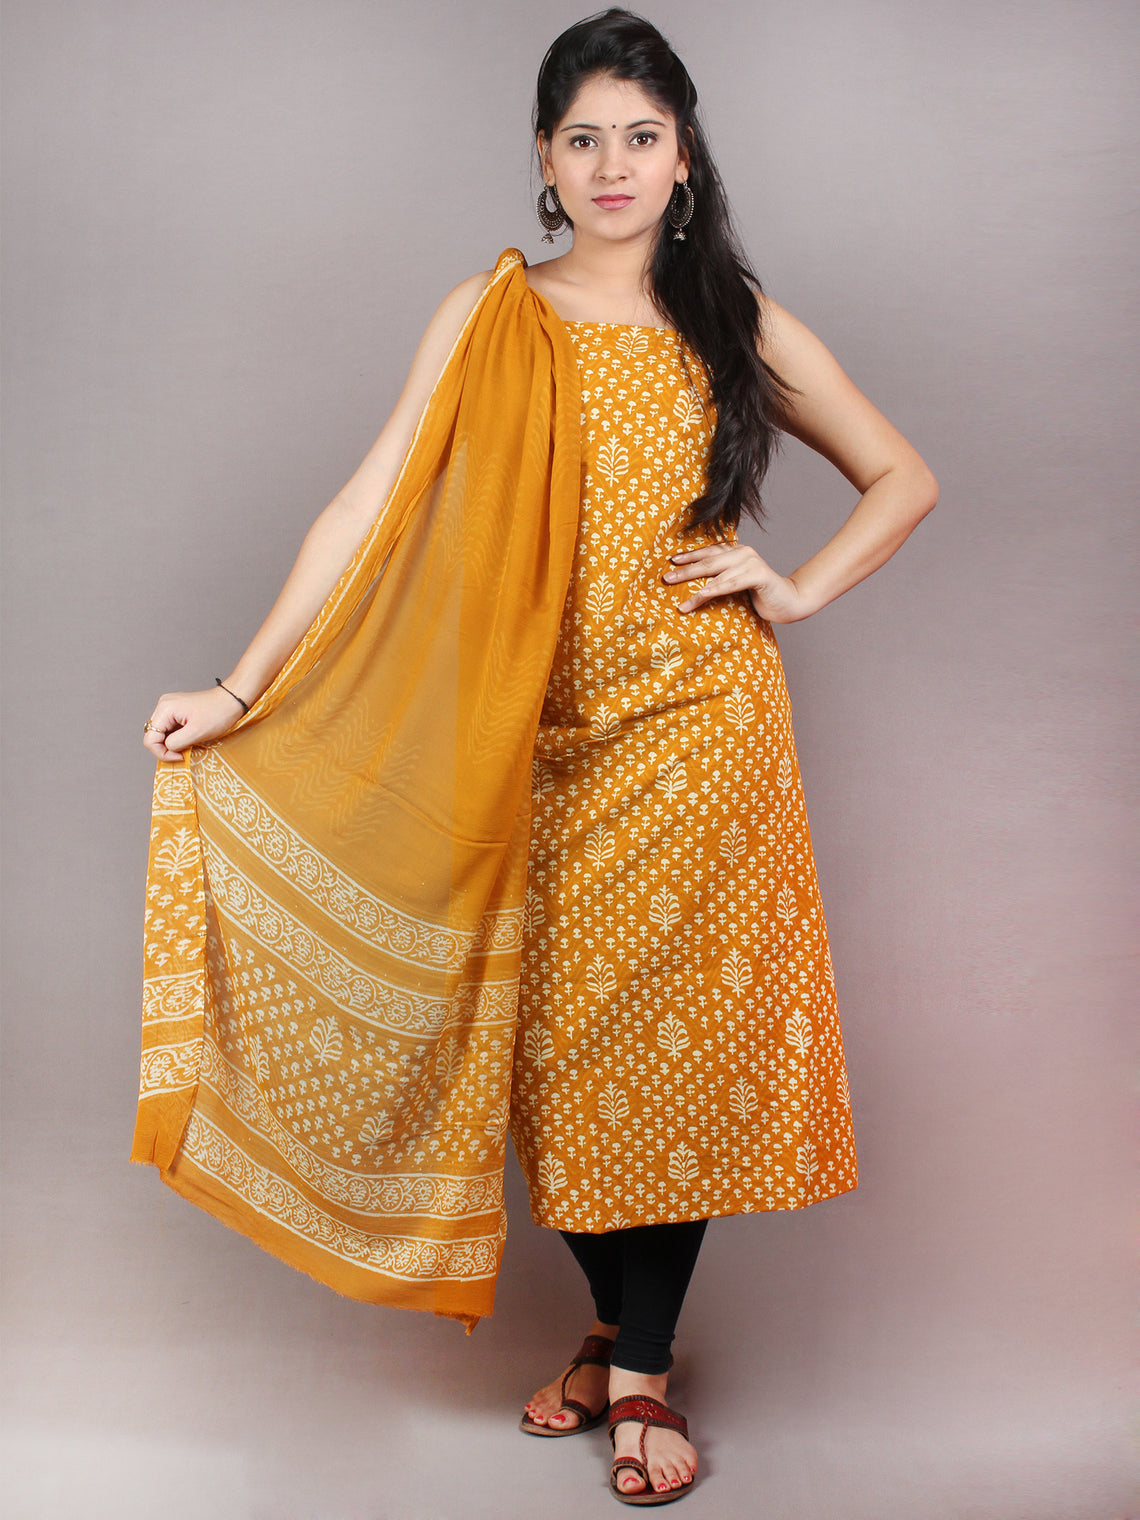 GoldenRod Yellow Beige Hand Block Printed Cotton Suit-Salwar Fabric With Chiffon Dupatta - S1628068